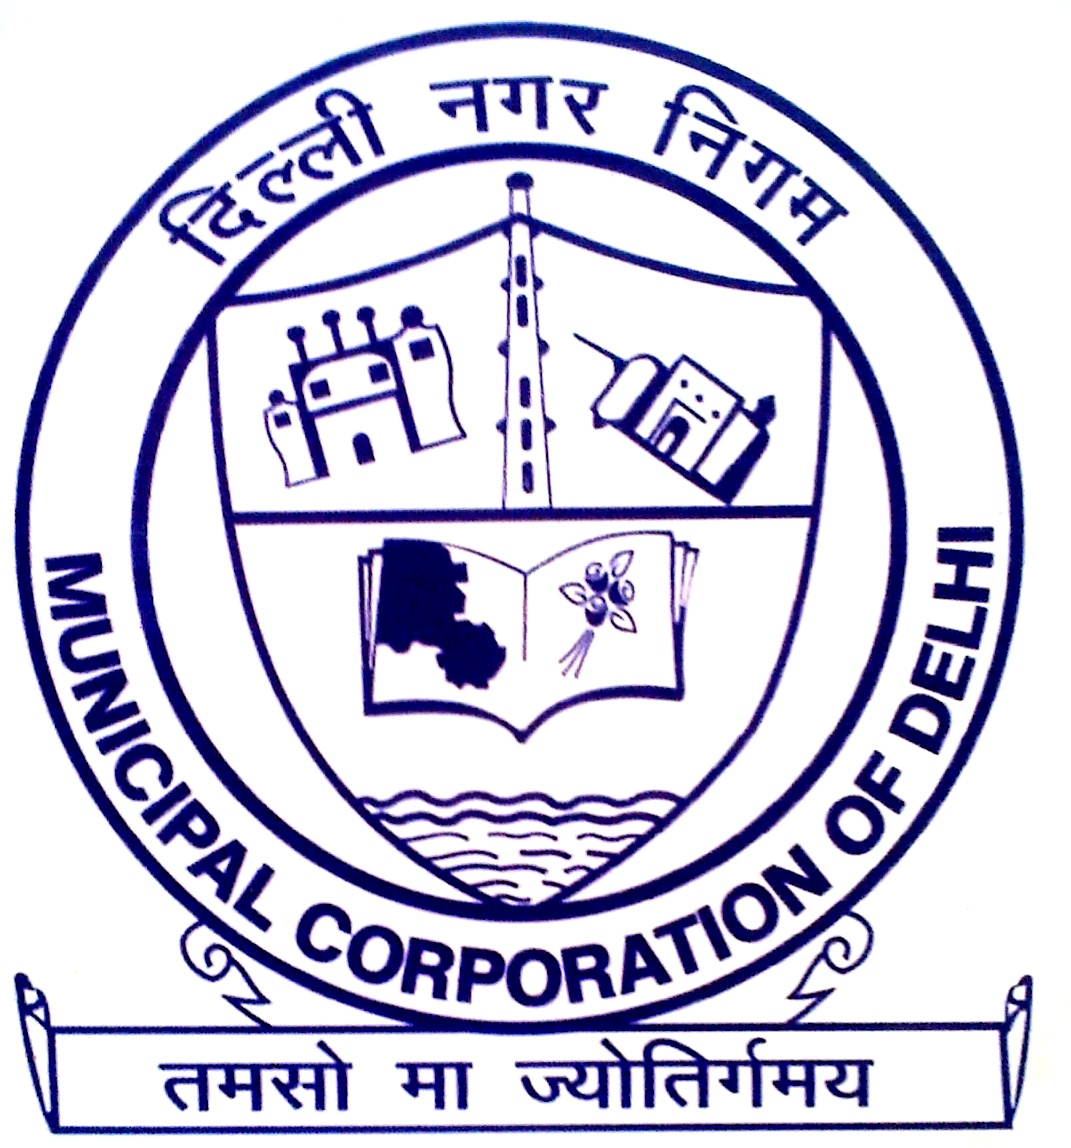 North Delhi Municipal Corporation